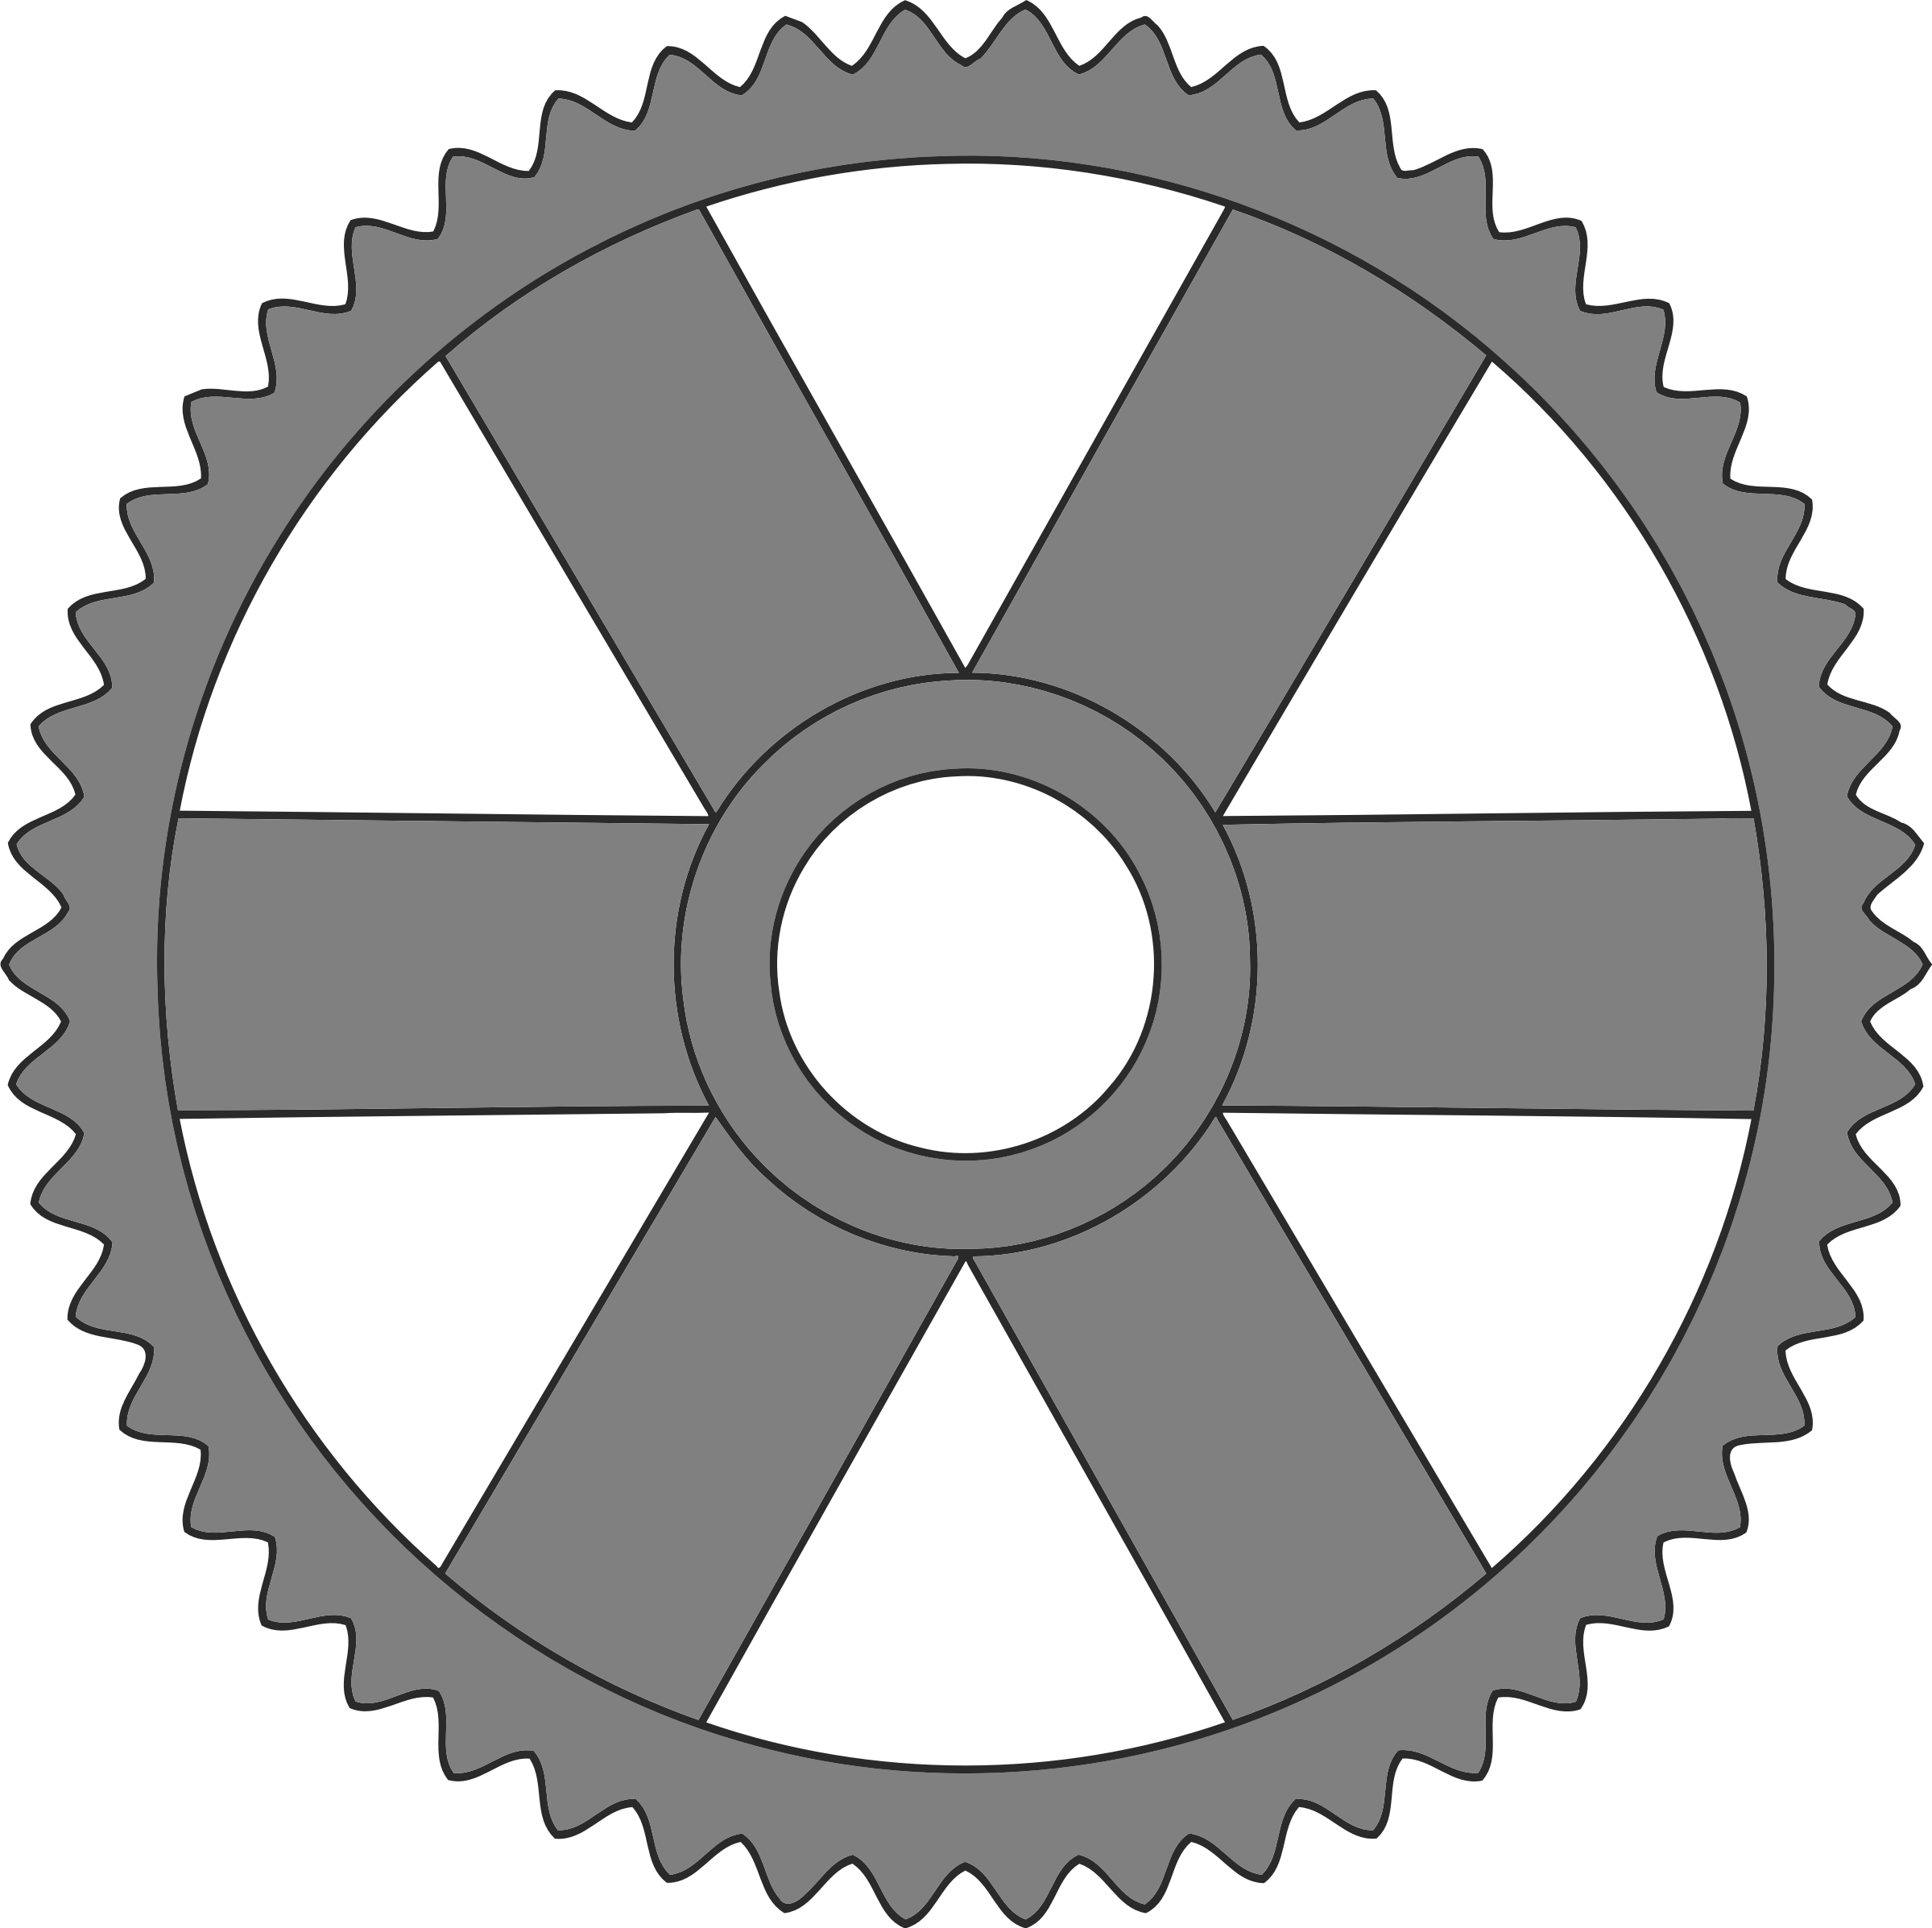 50-tooth gear with rectangular spokes by Firkin